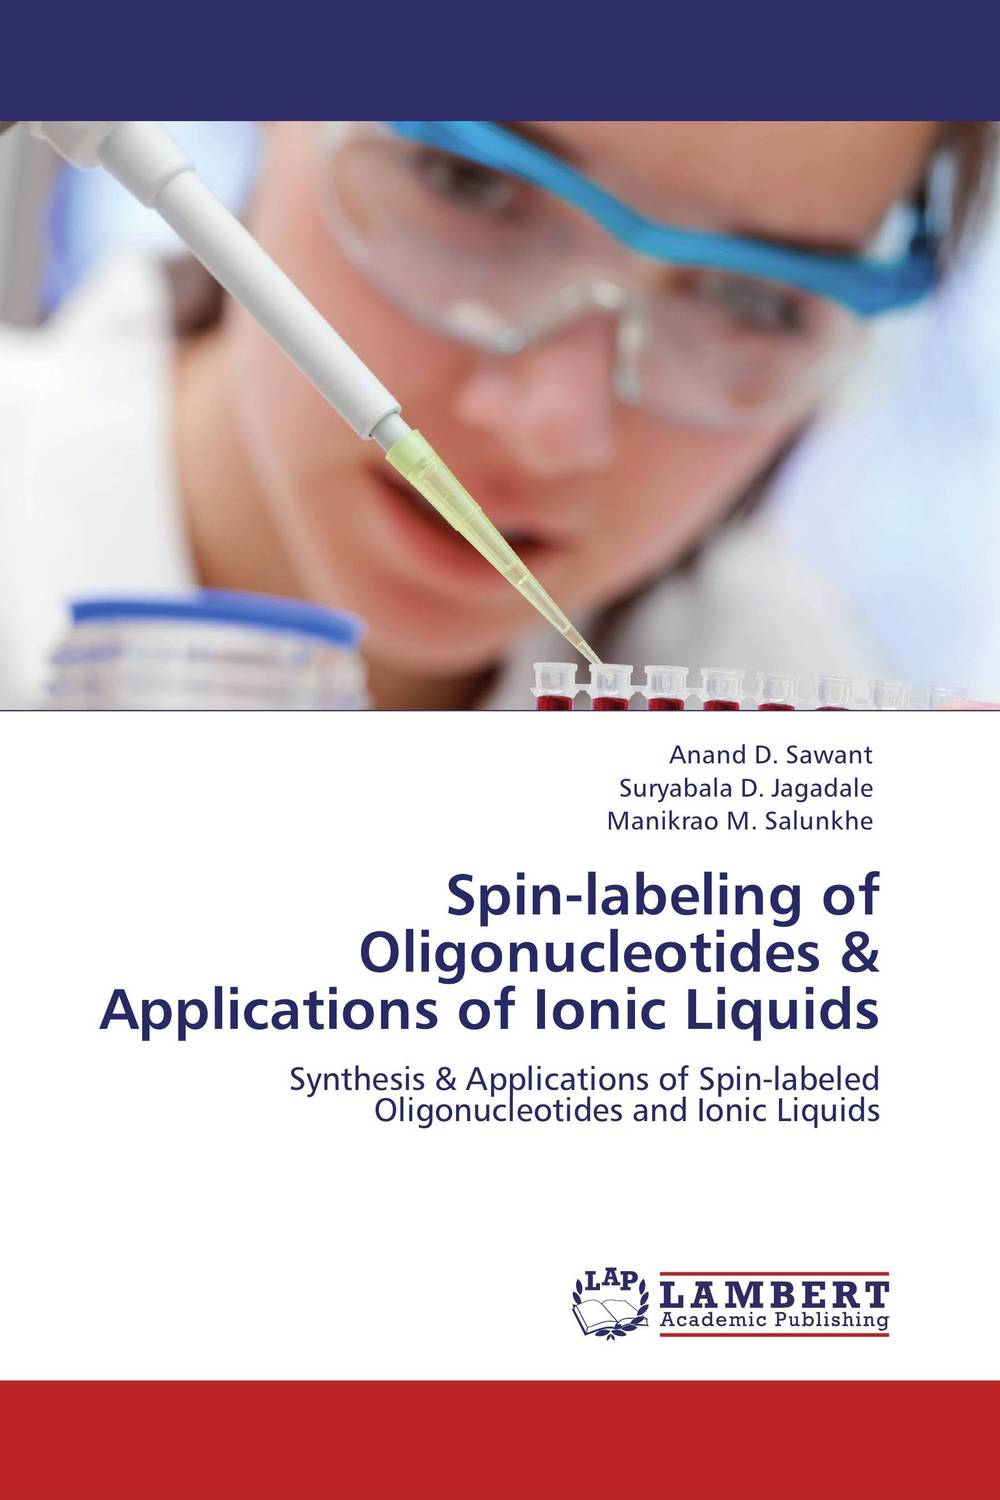 Spin-labeling of Oligonucleotides & Applications of Ionic Liquids dennis hall g boronic acids preparation and applications in organic synthesis medicine and materials